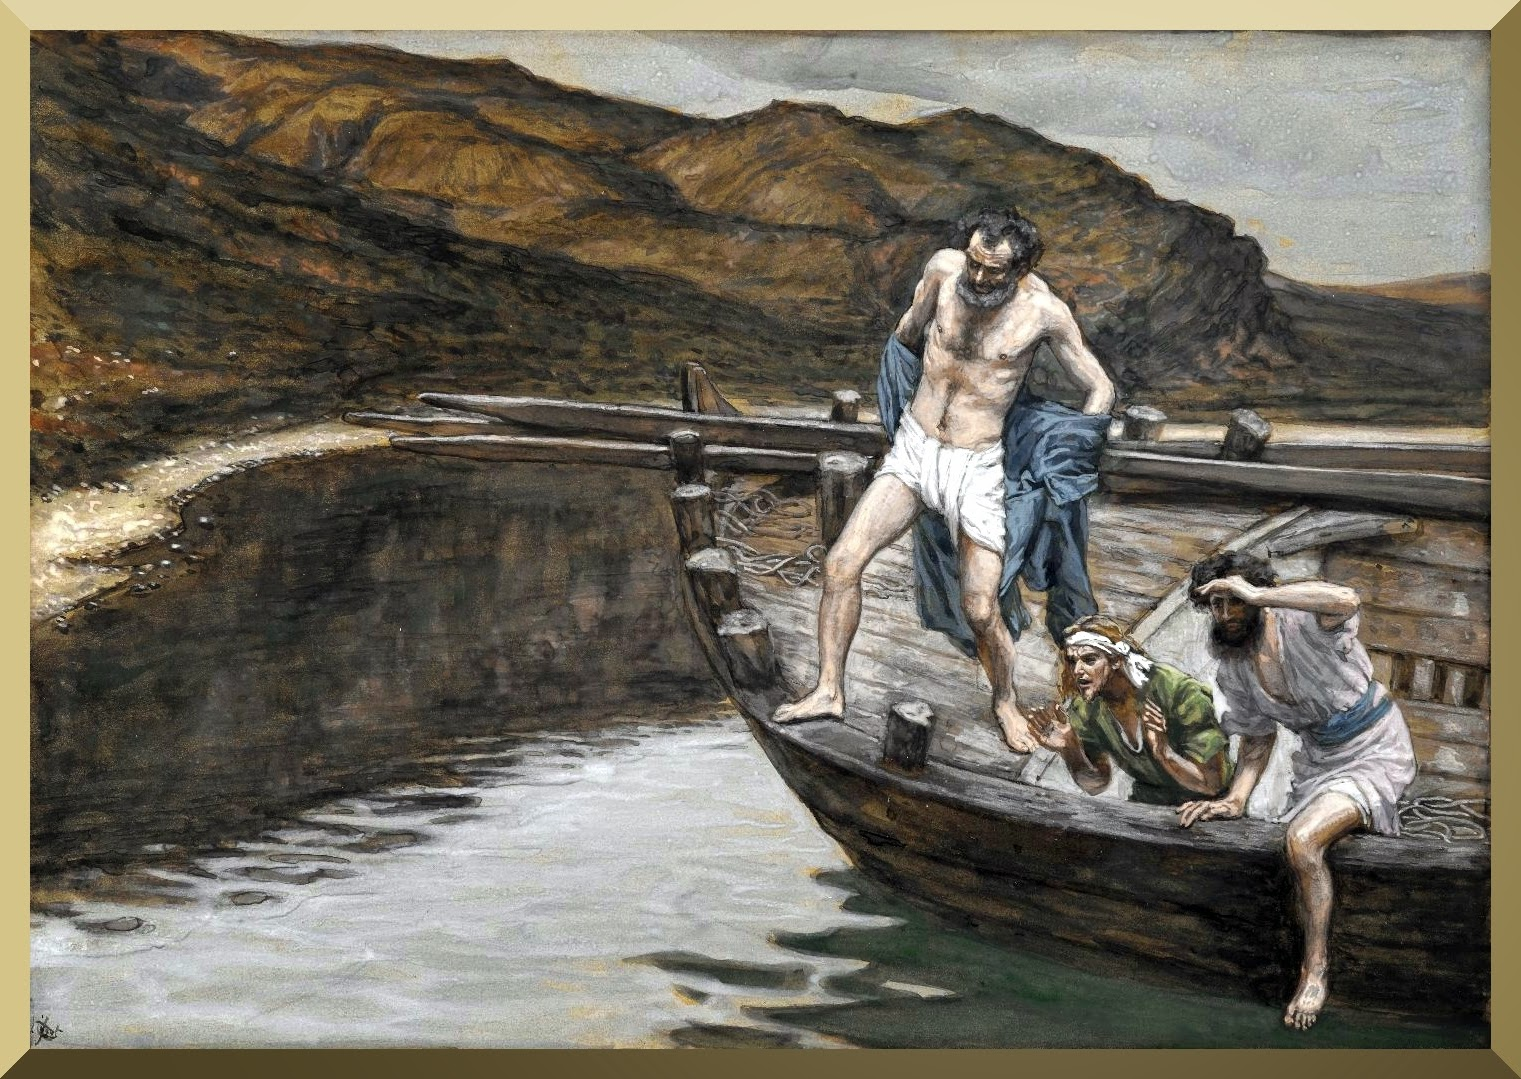 """Saint Peter Alerted by Saint John to the Presence of the Lord Casts Himself into the Water"" -- by James Tissot"